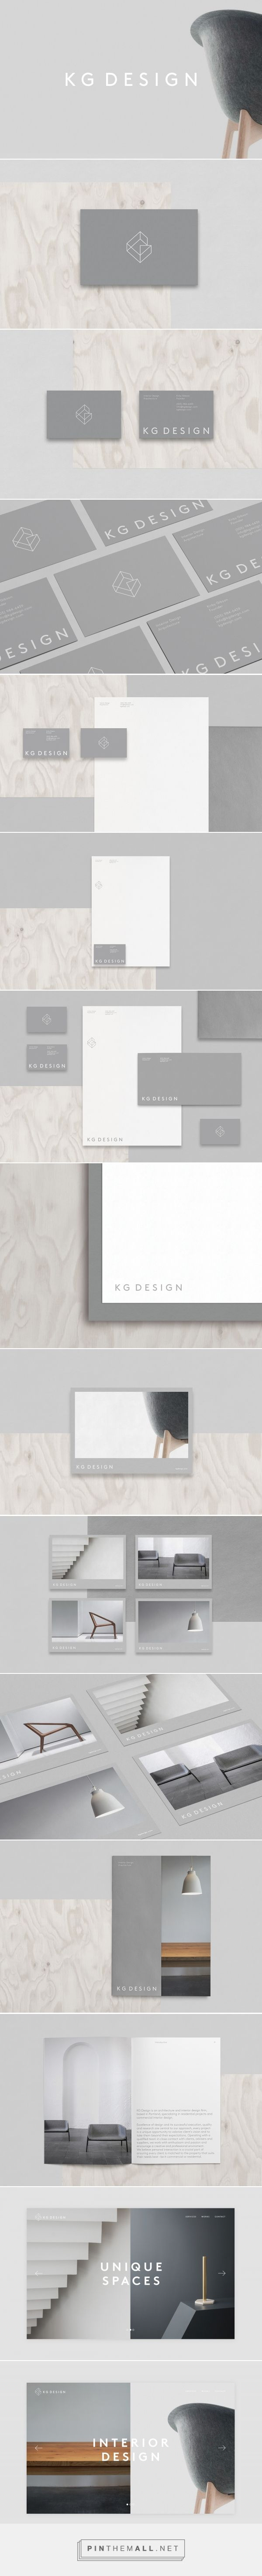 KG Design Interior Design and Arquitecture Firm Branding by Sonia Castillo | Fivestar Branding Agency – Design and Branding Agency & Curated Inspiration Gallery